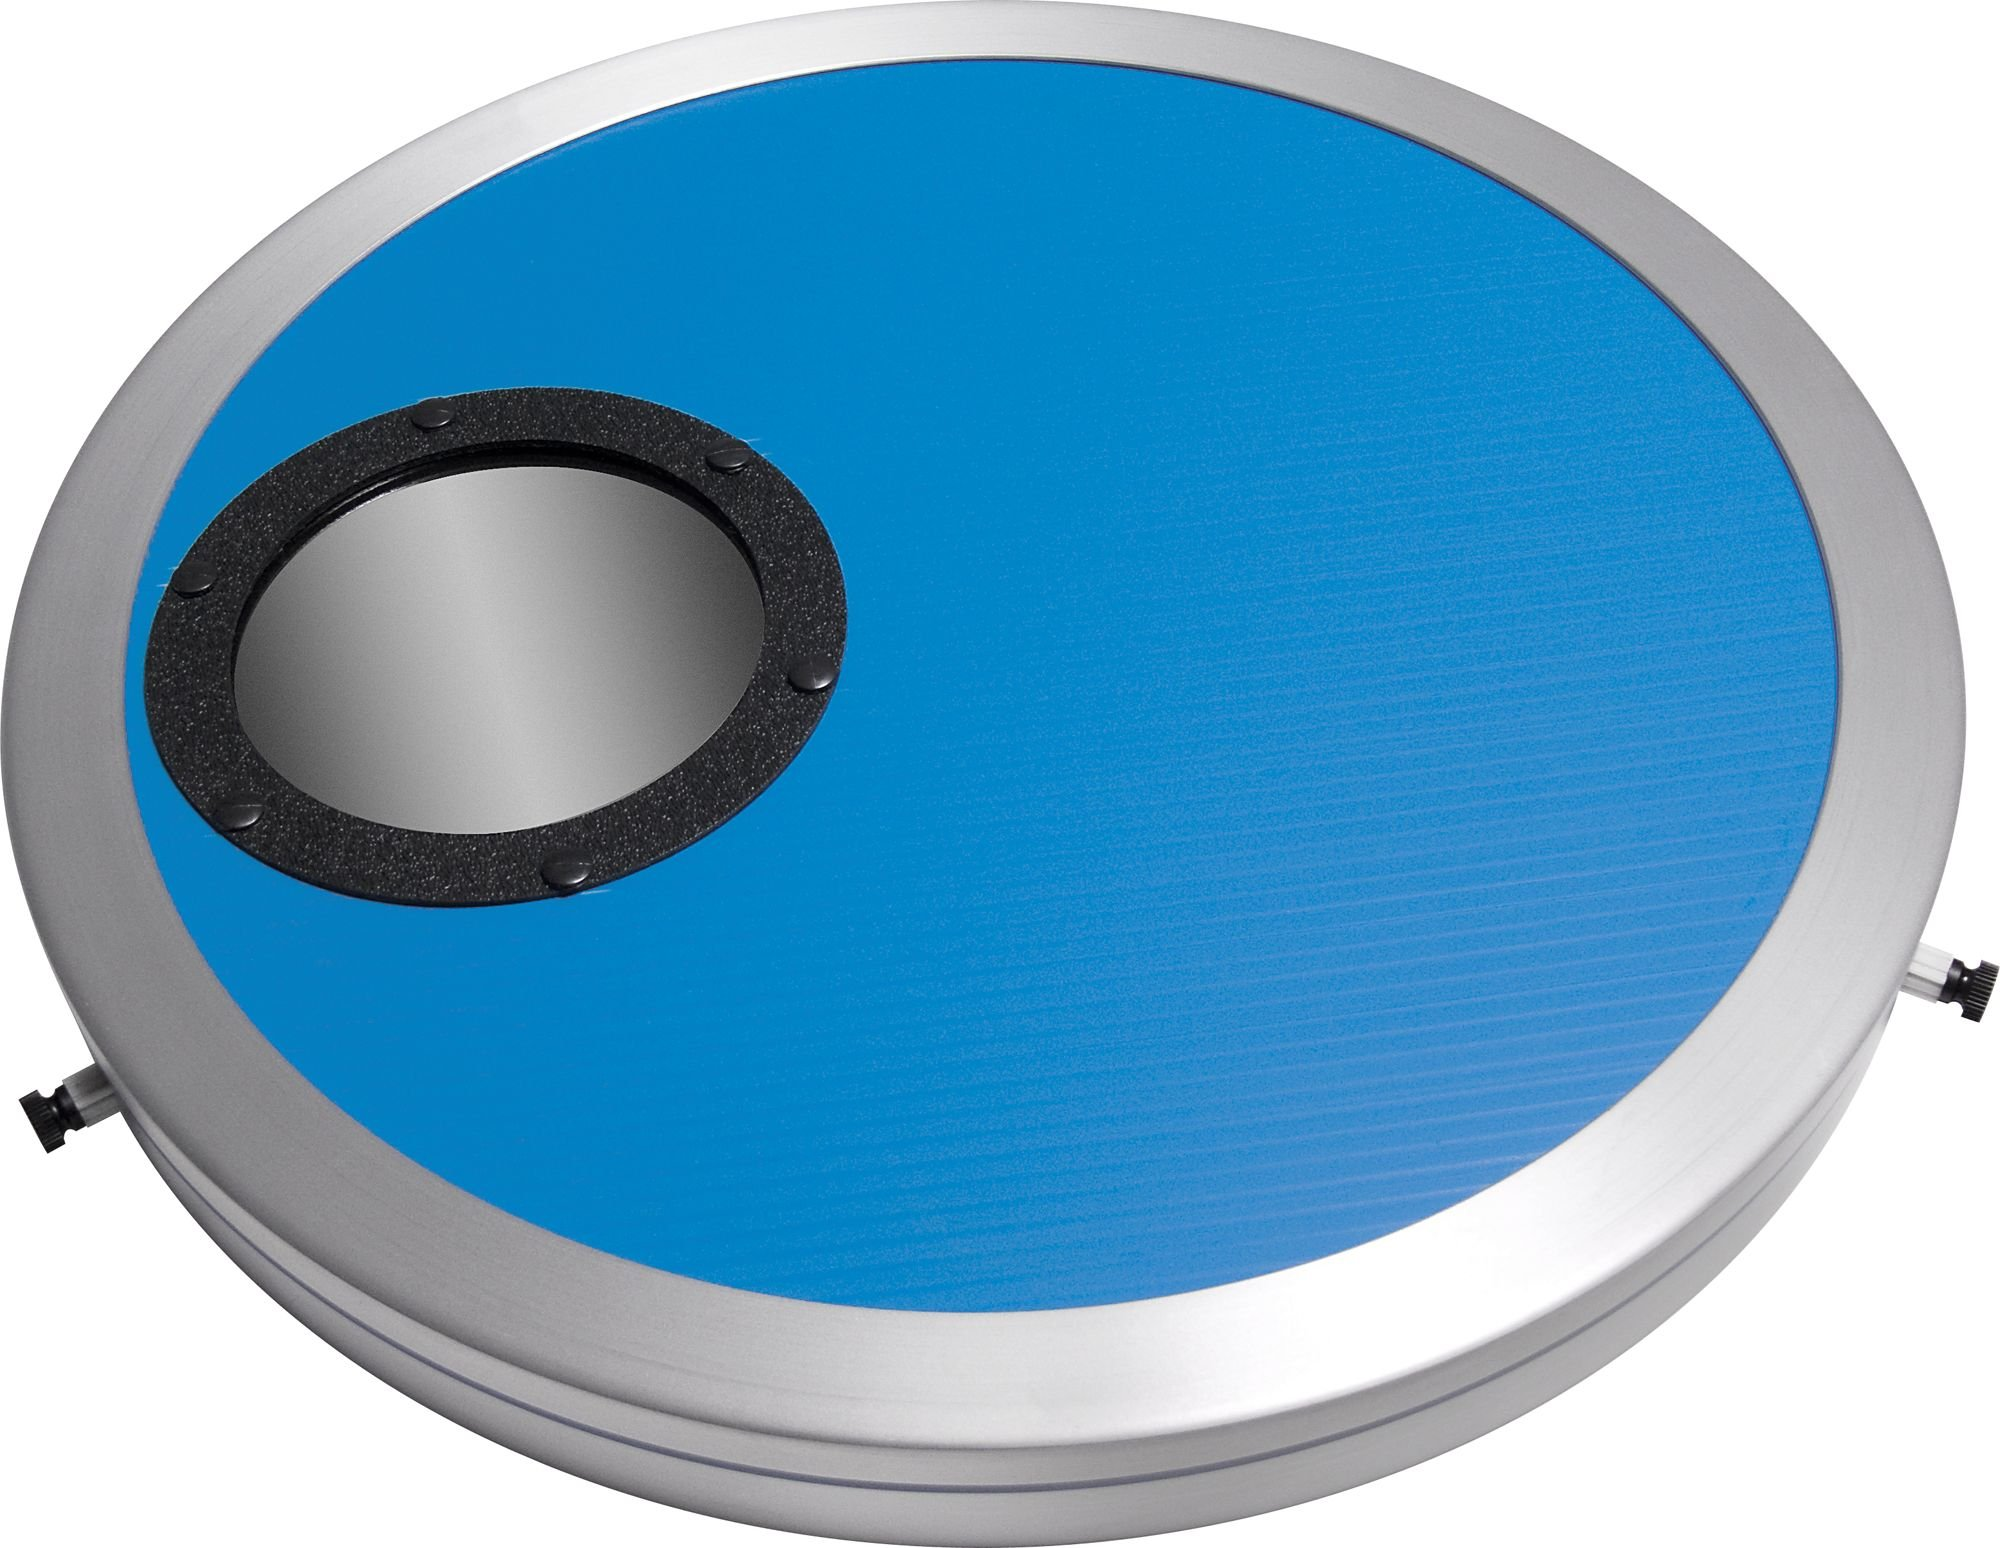 Orion 7725 14.21-Inch ID Off Axis Solar Filter